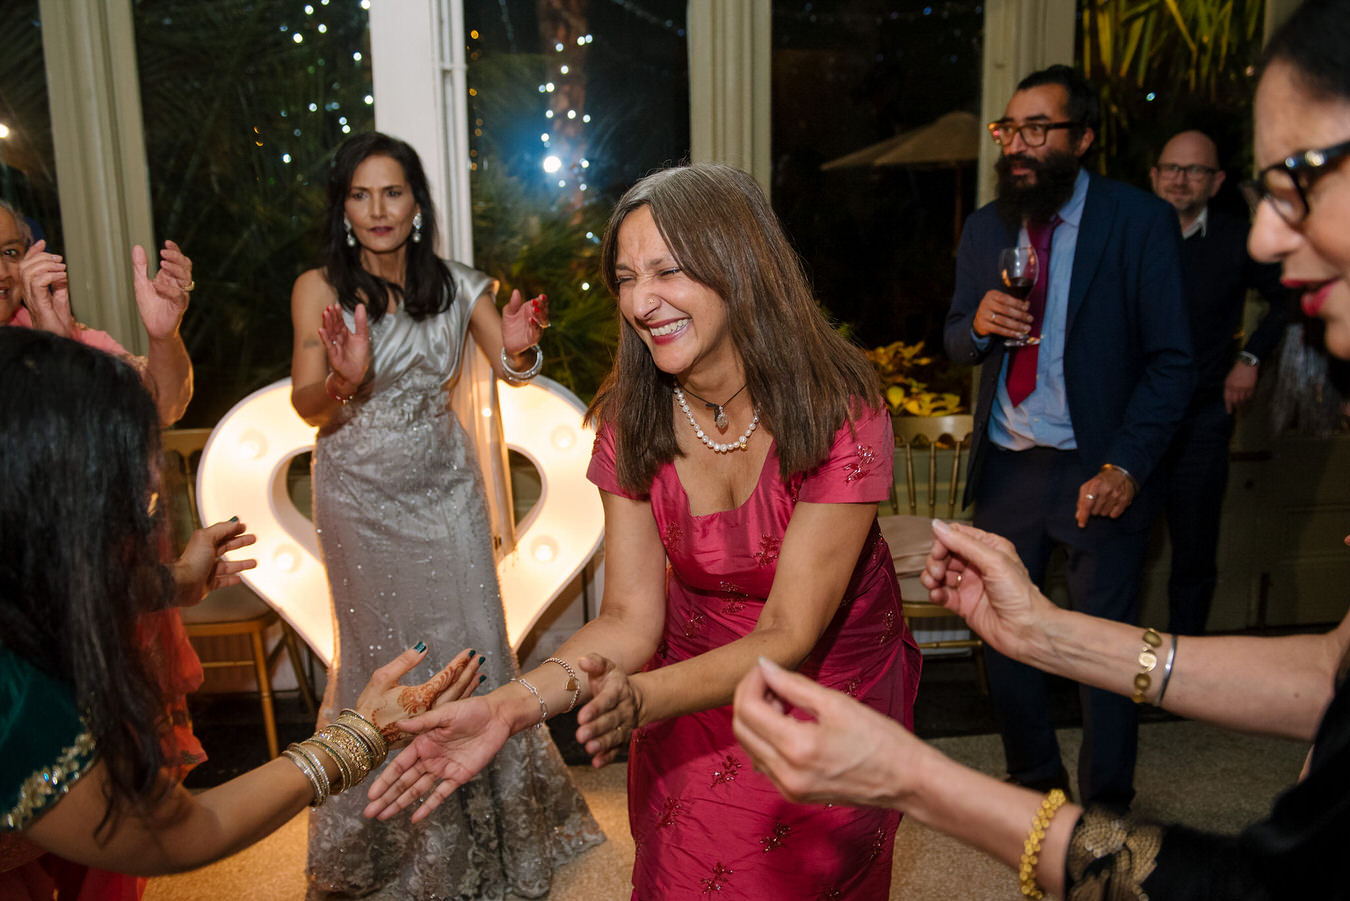 Wedding guests are clapping hands in the rhythm of the Asian music and dance.